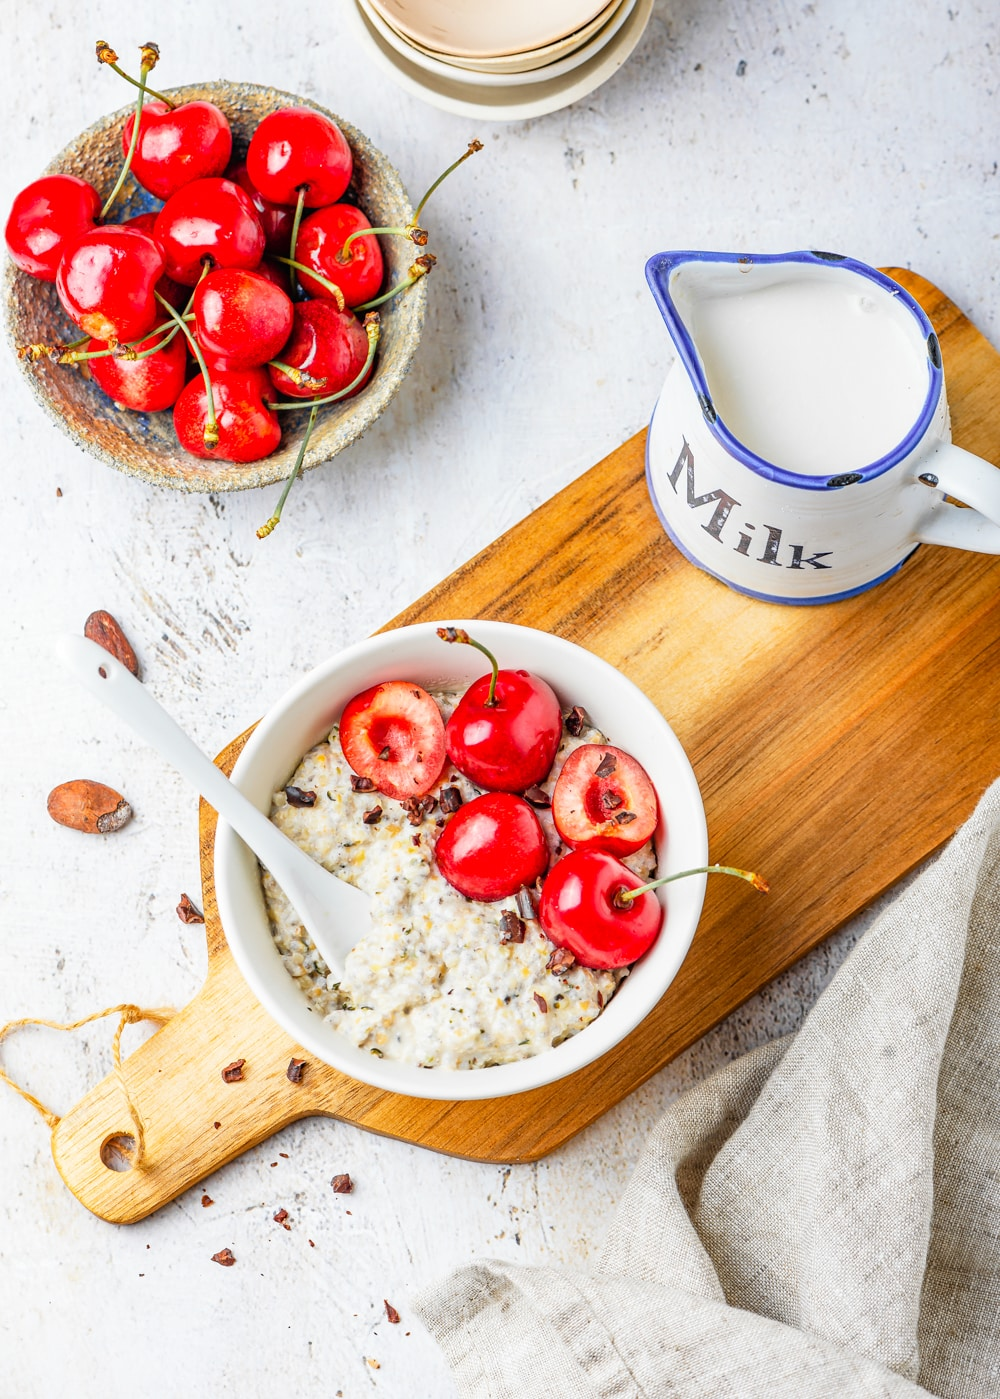 Oatmeal in a white bowl on a cutting board surrounded by a napkin, a small bowl of cherries, and a cup of milk.